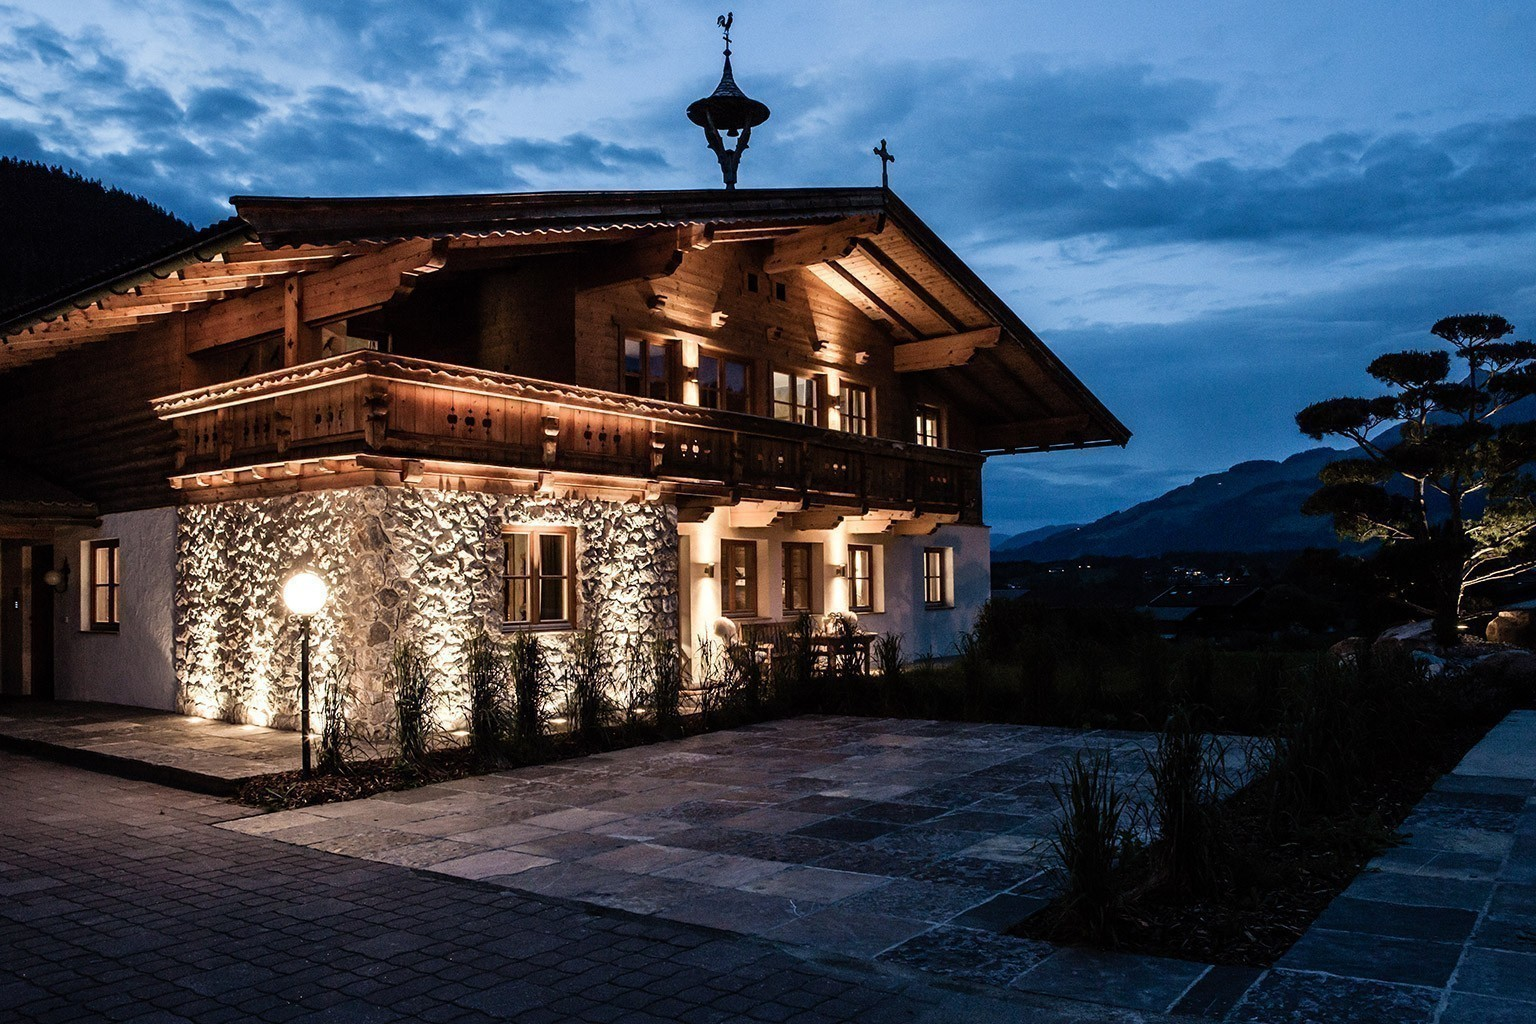 Kitz boutique chalet luxushotel bei designreisen for Boutique hotel tirol